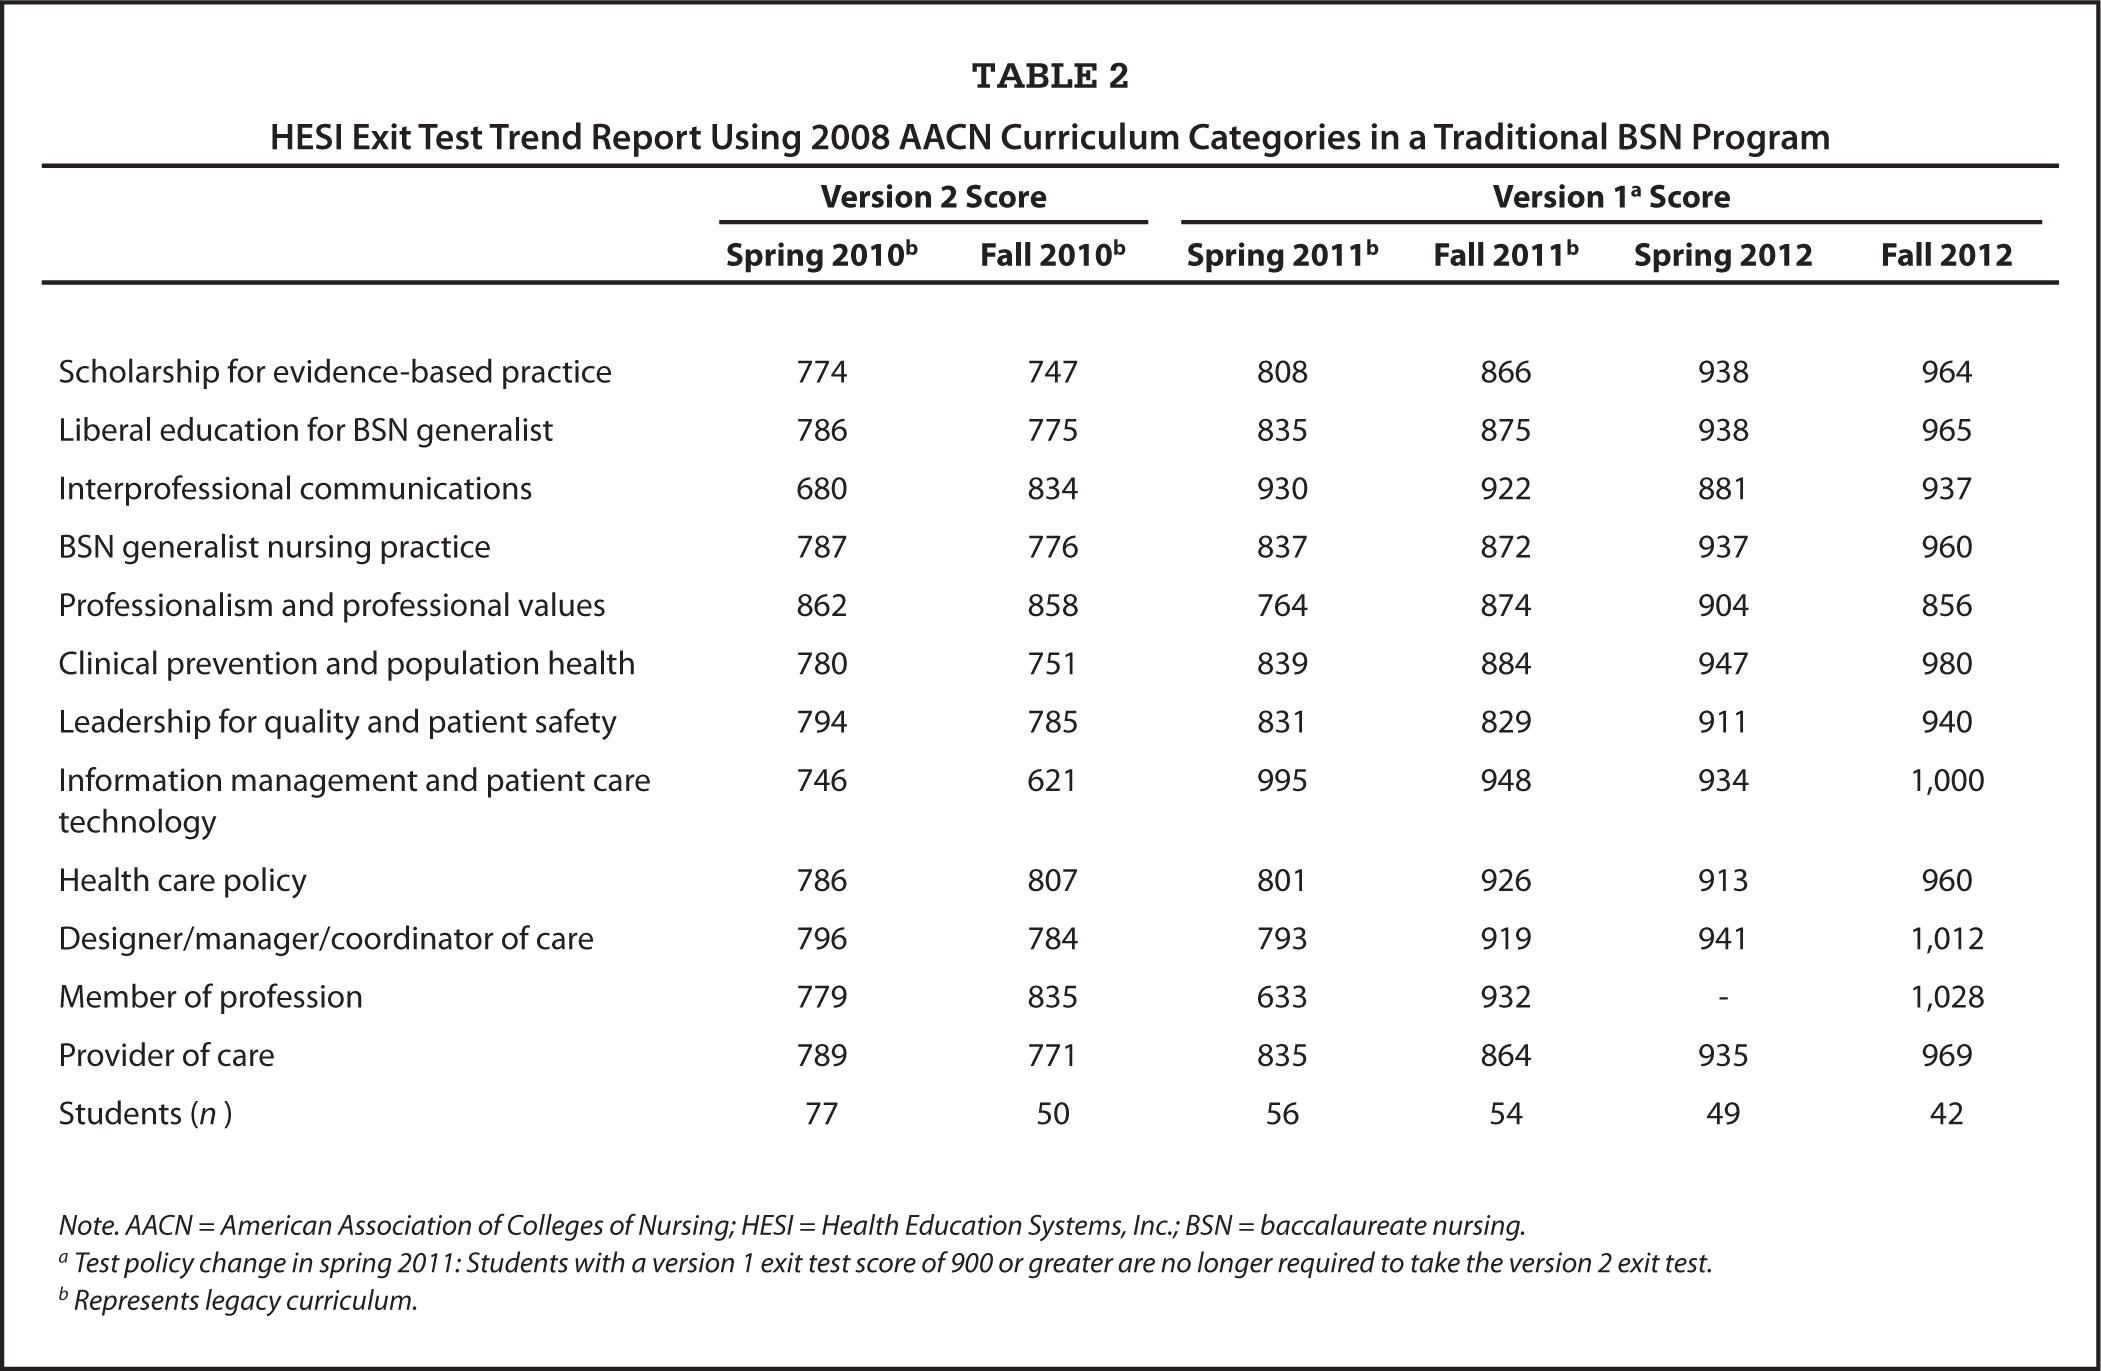 HESI Exit Test Trend Report Using 2008 AACN Curriculum Categories in a Traditional BSN Program